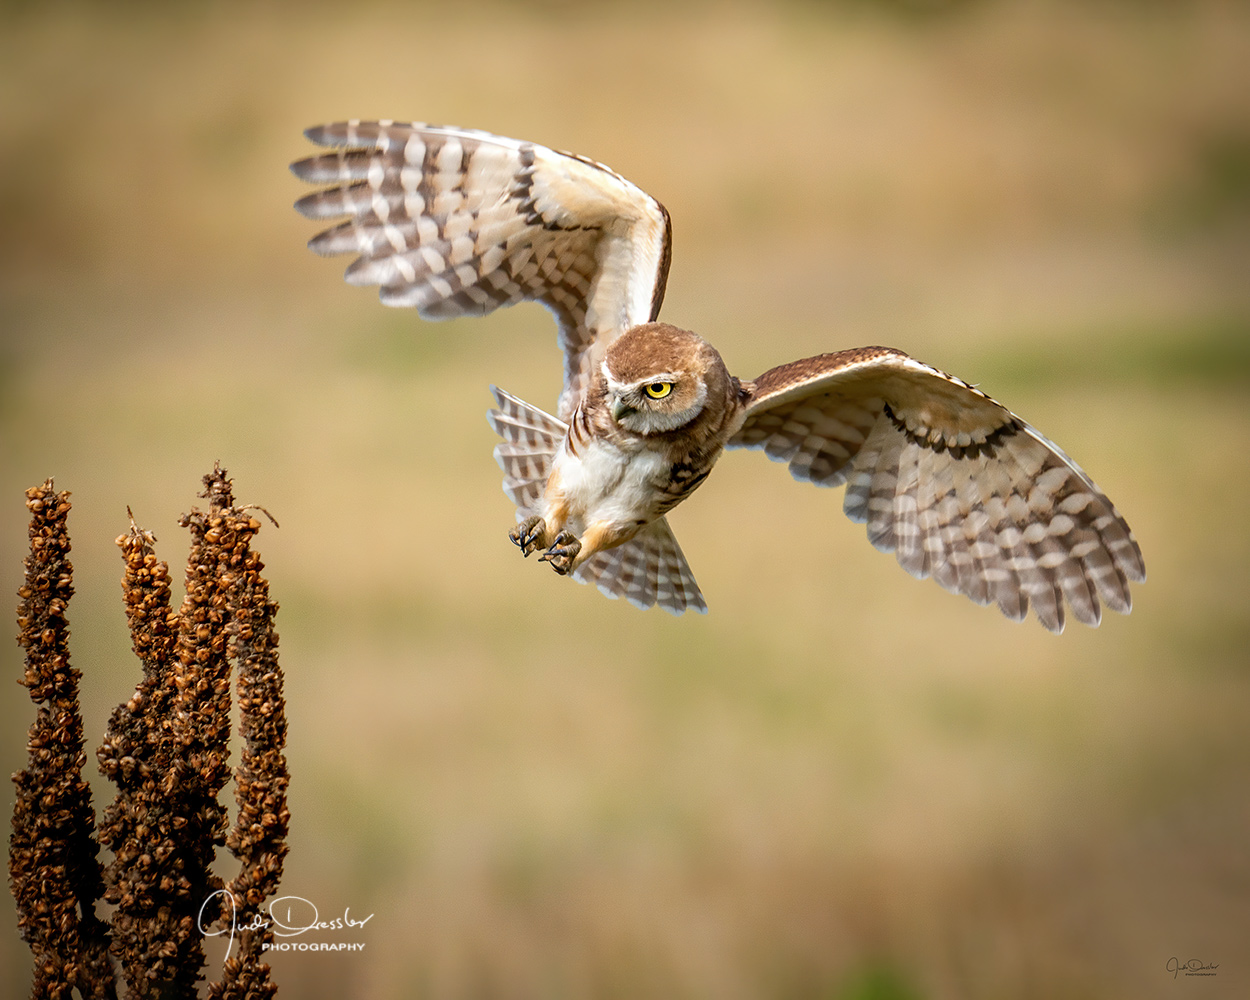 Coming in for a Landing, burrowing owl, owl